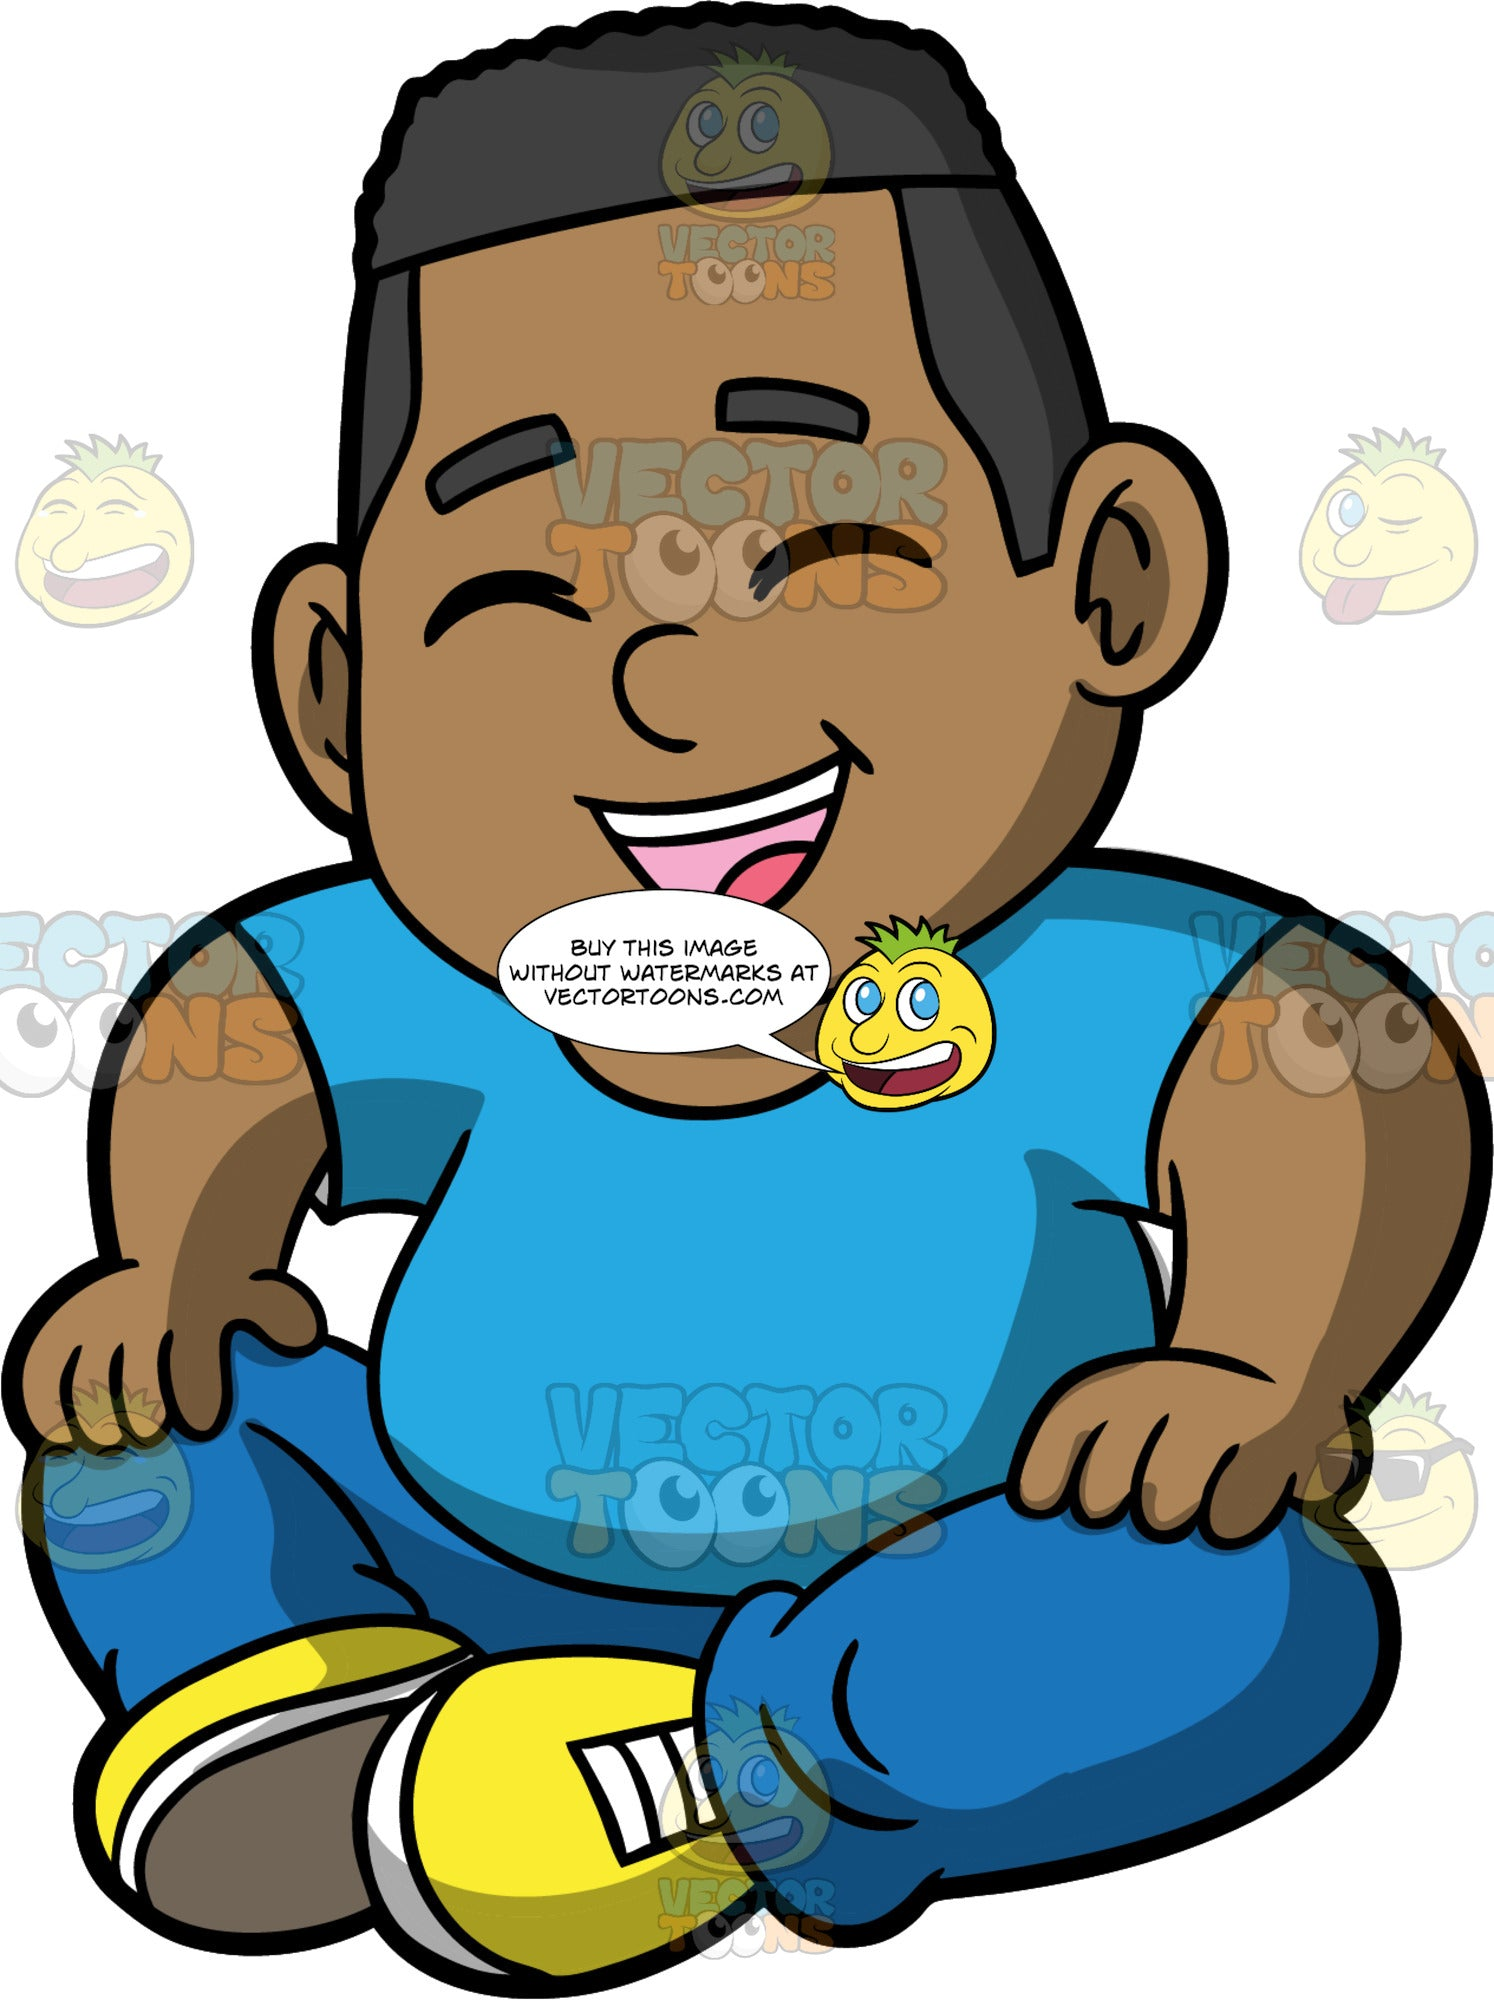 Young James Sitting On The Floor Laughing. A black boy wearing blue pants, a blue shirt, and yellow shoes, sitting on the floor with his eyes closed as he laughs at something funny